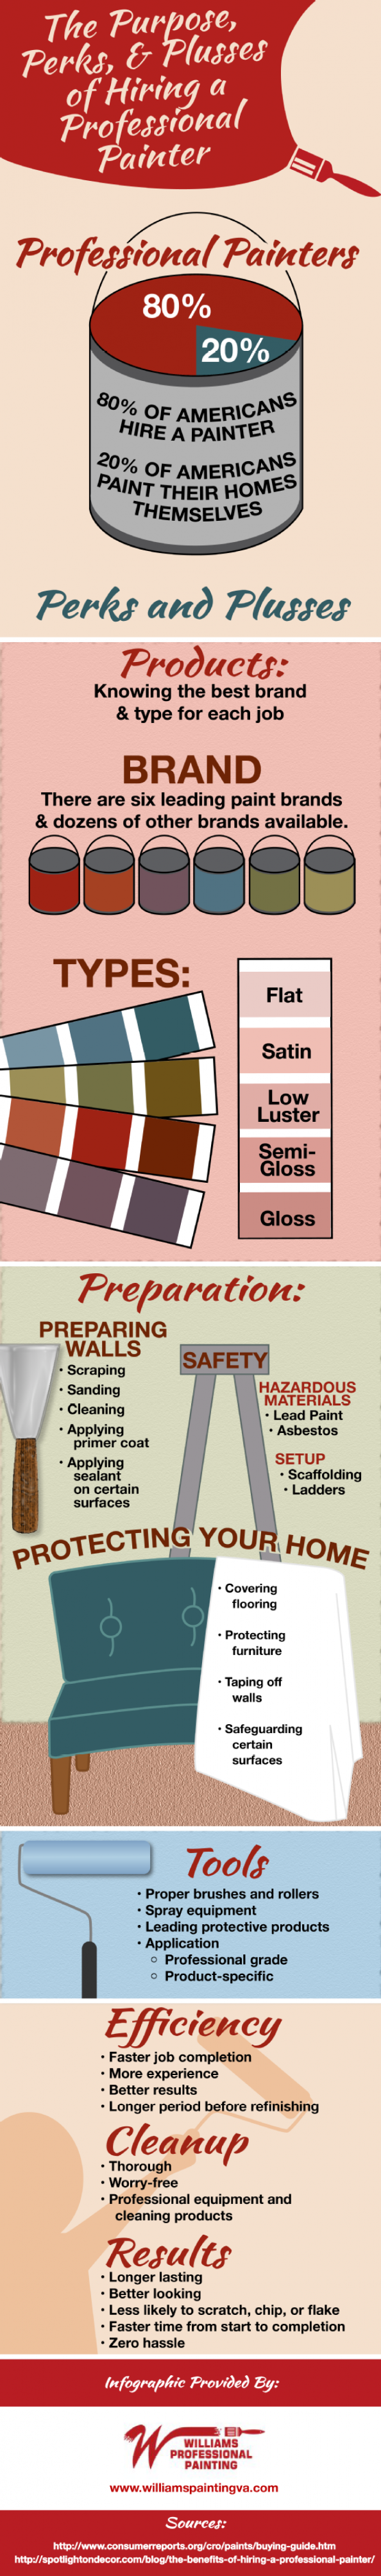 The Purpose, Perks, and Plusses of Hiring a Professional Painter Infographic